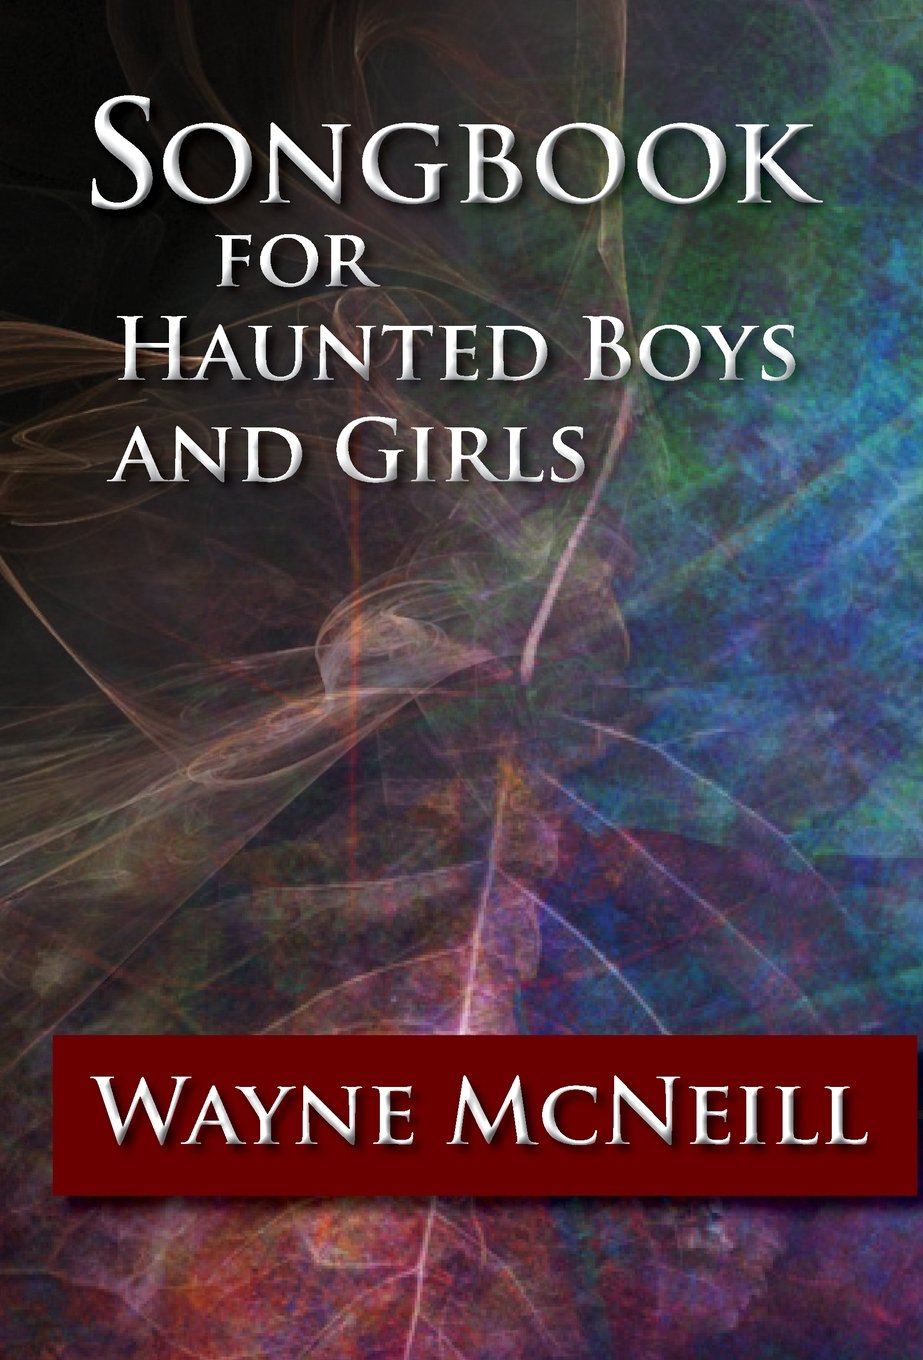 Songbook for Haunted Boys and Girls: Wayne McNeill: 9780979393570:  Amazon.com: Books